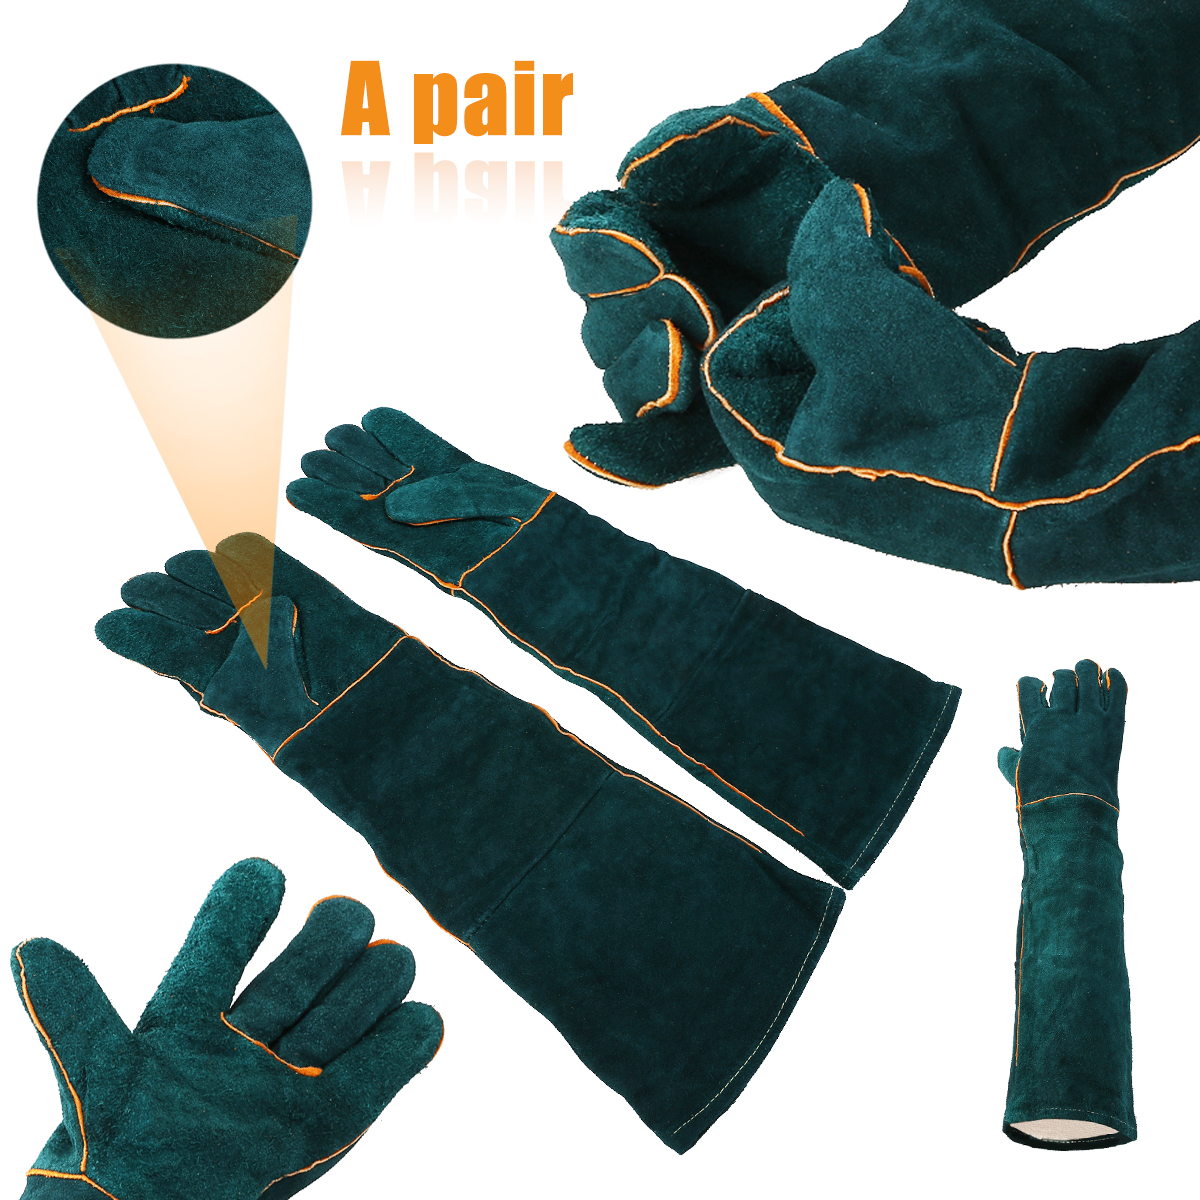 1pair Cowhide Welding Gloves Long Heat Resistant Gloves Safety Protective Leather Gear Working Gloves 60cm